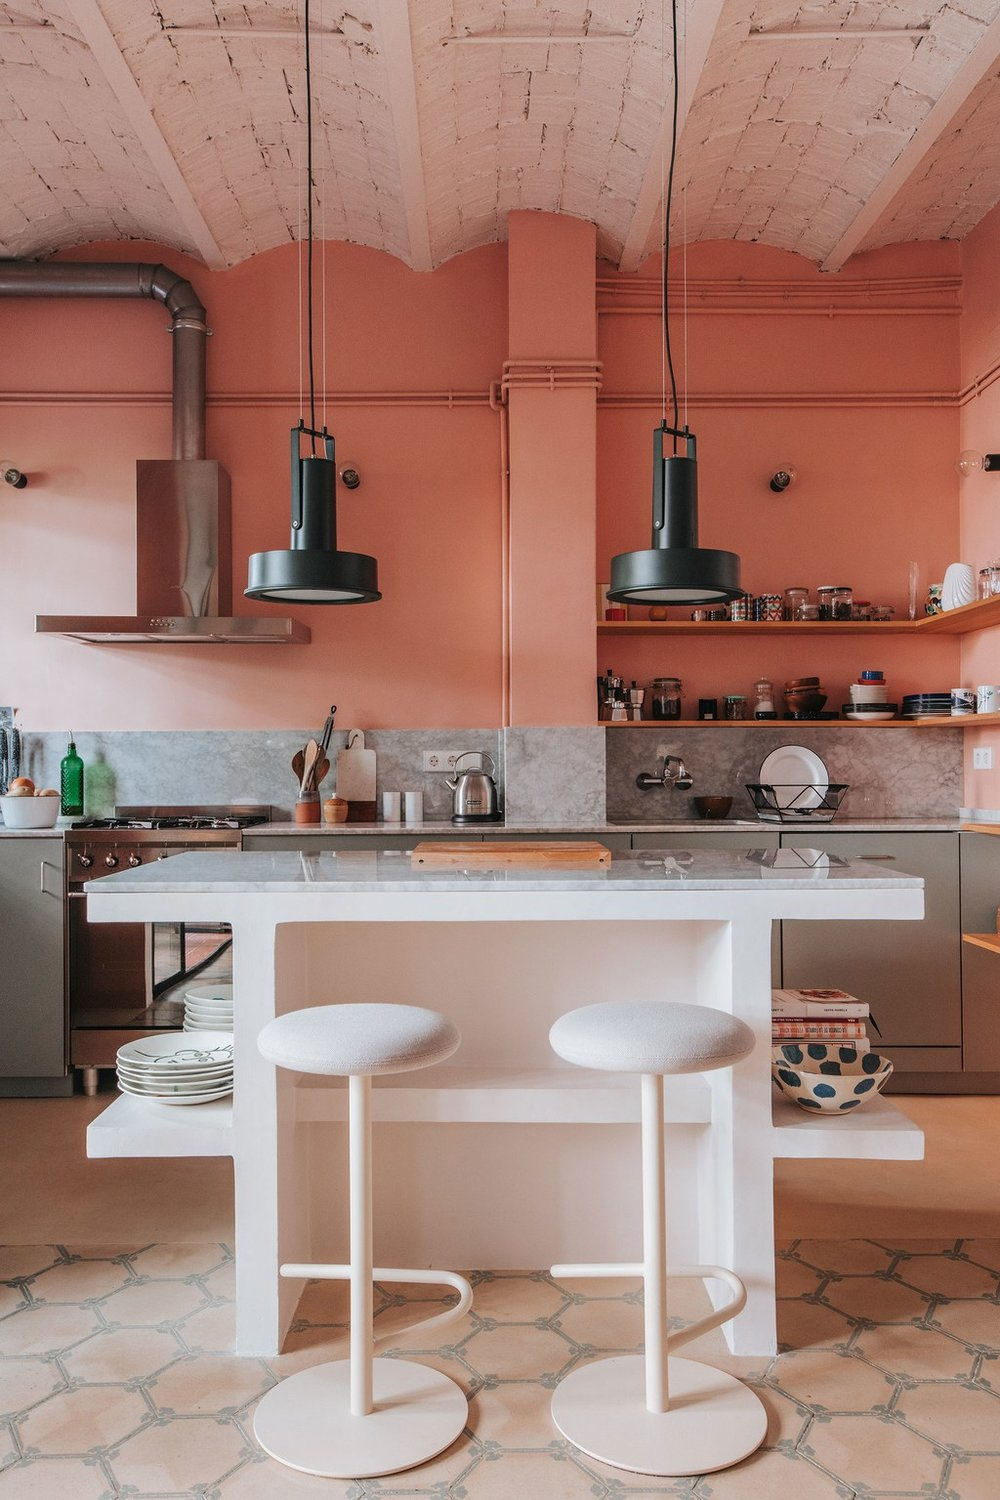 The Nordroom - A Barcelona Apartment With A Coral Pink Kitchen